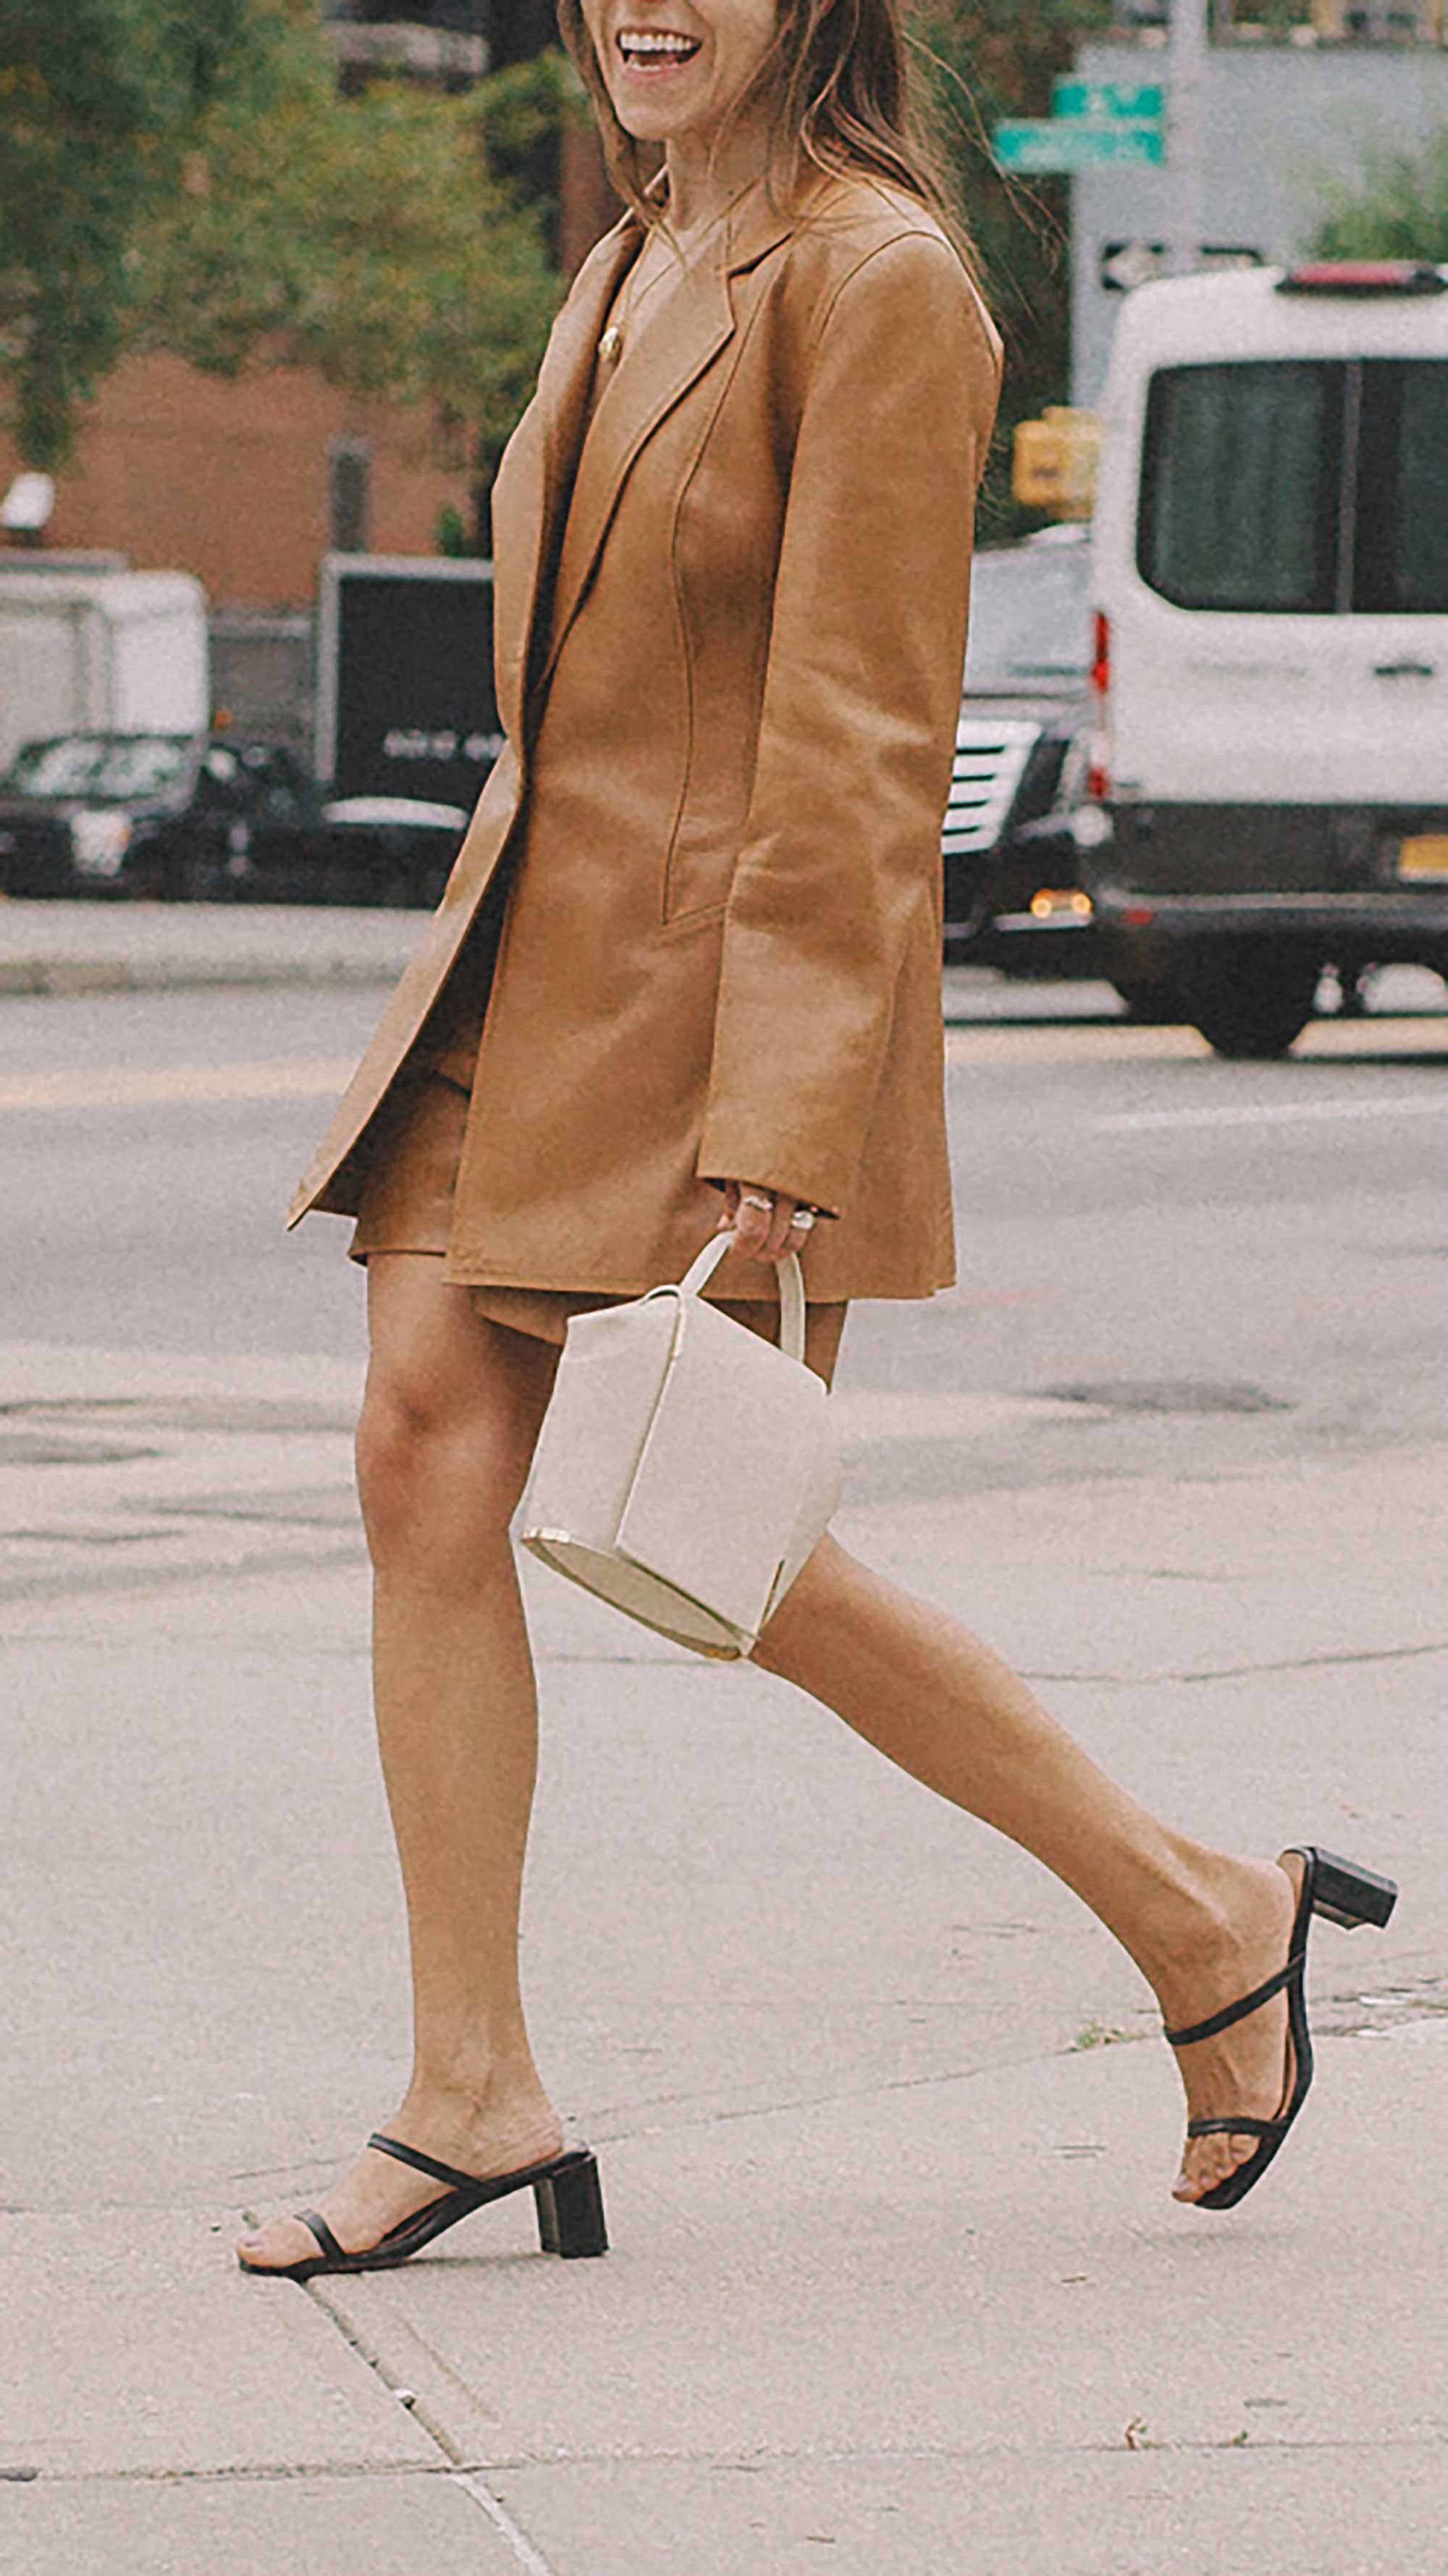 Best outfits of New York Fashion Week street style -17.jpg